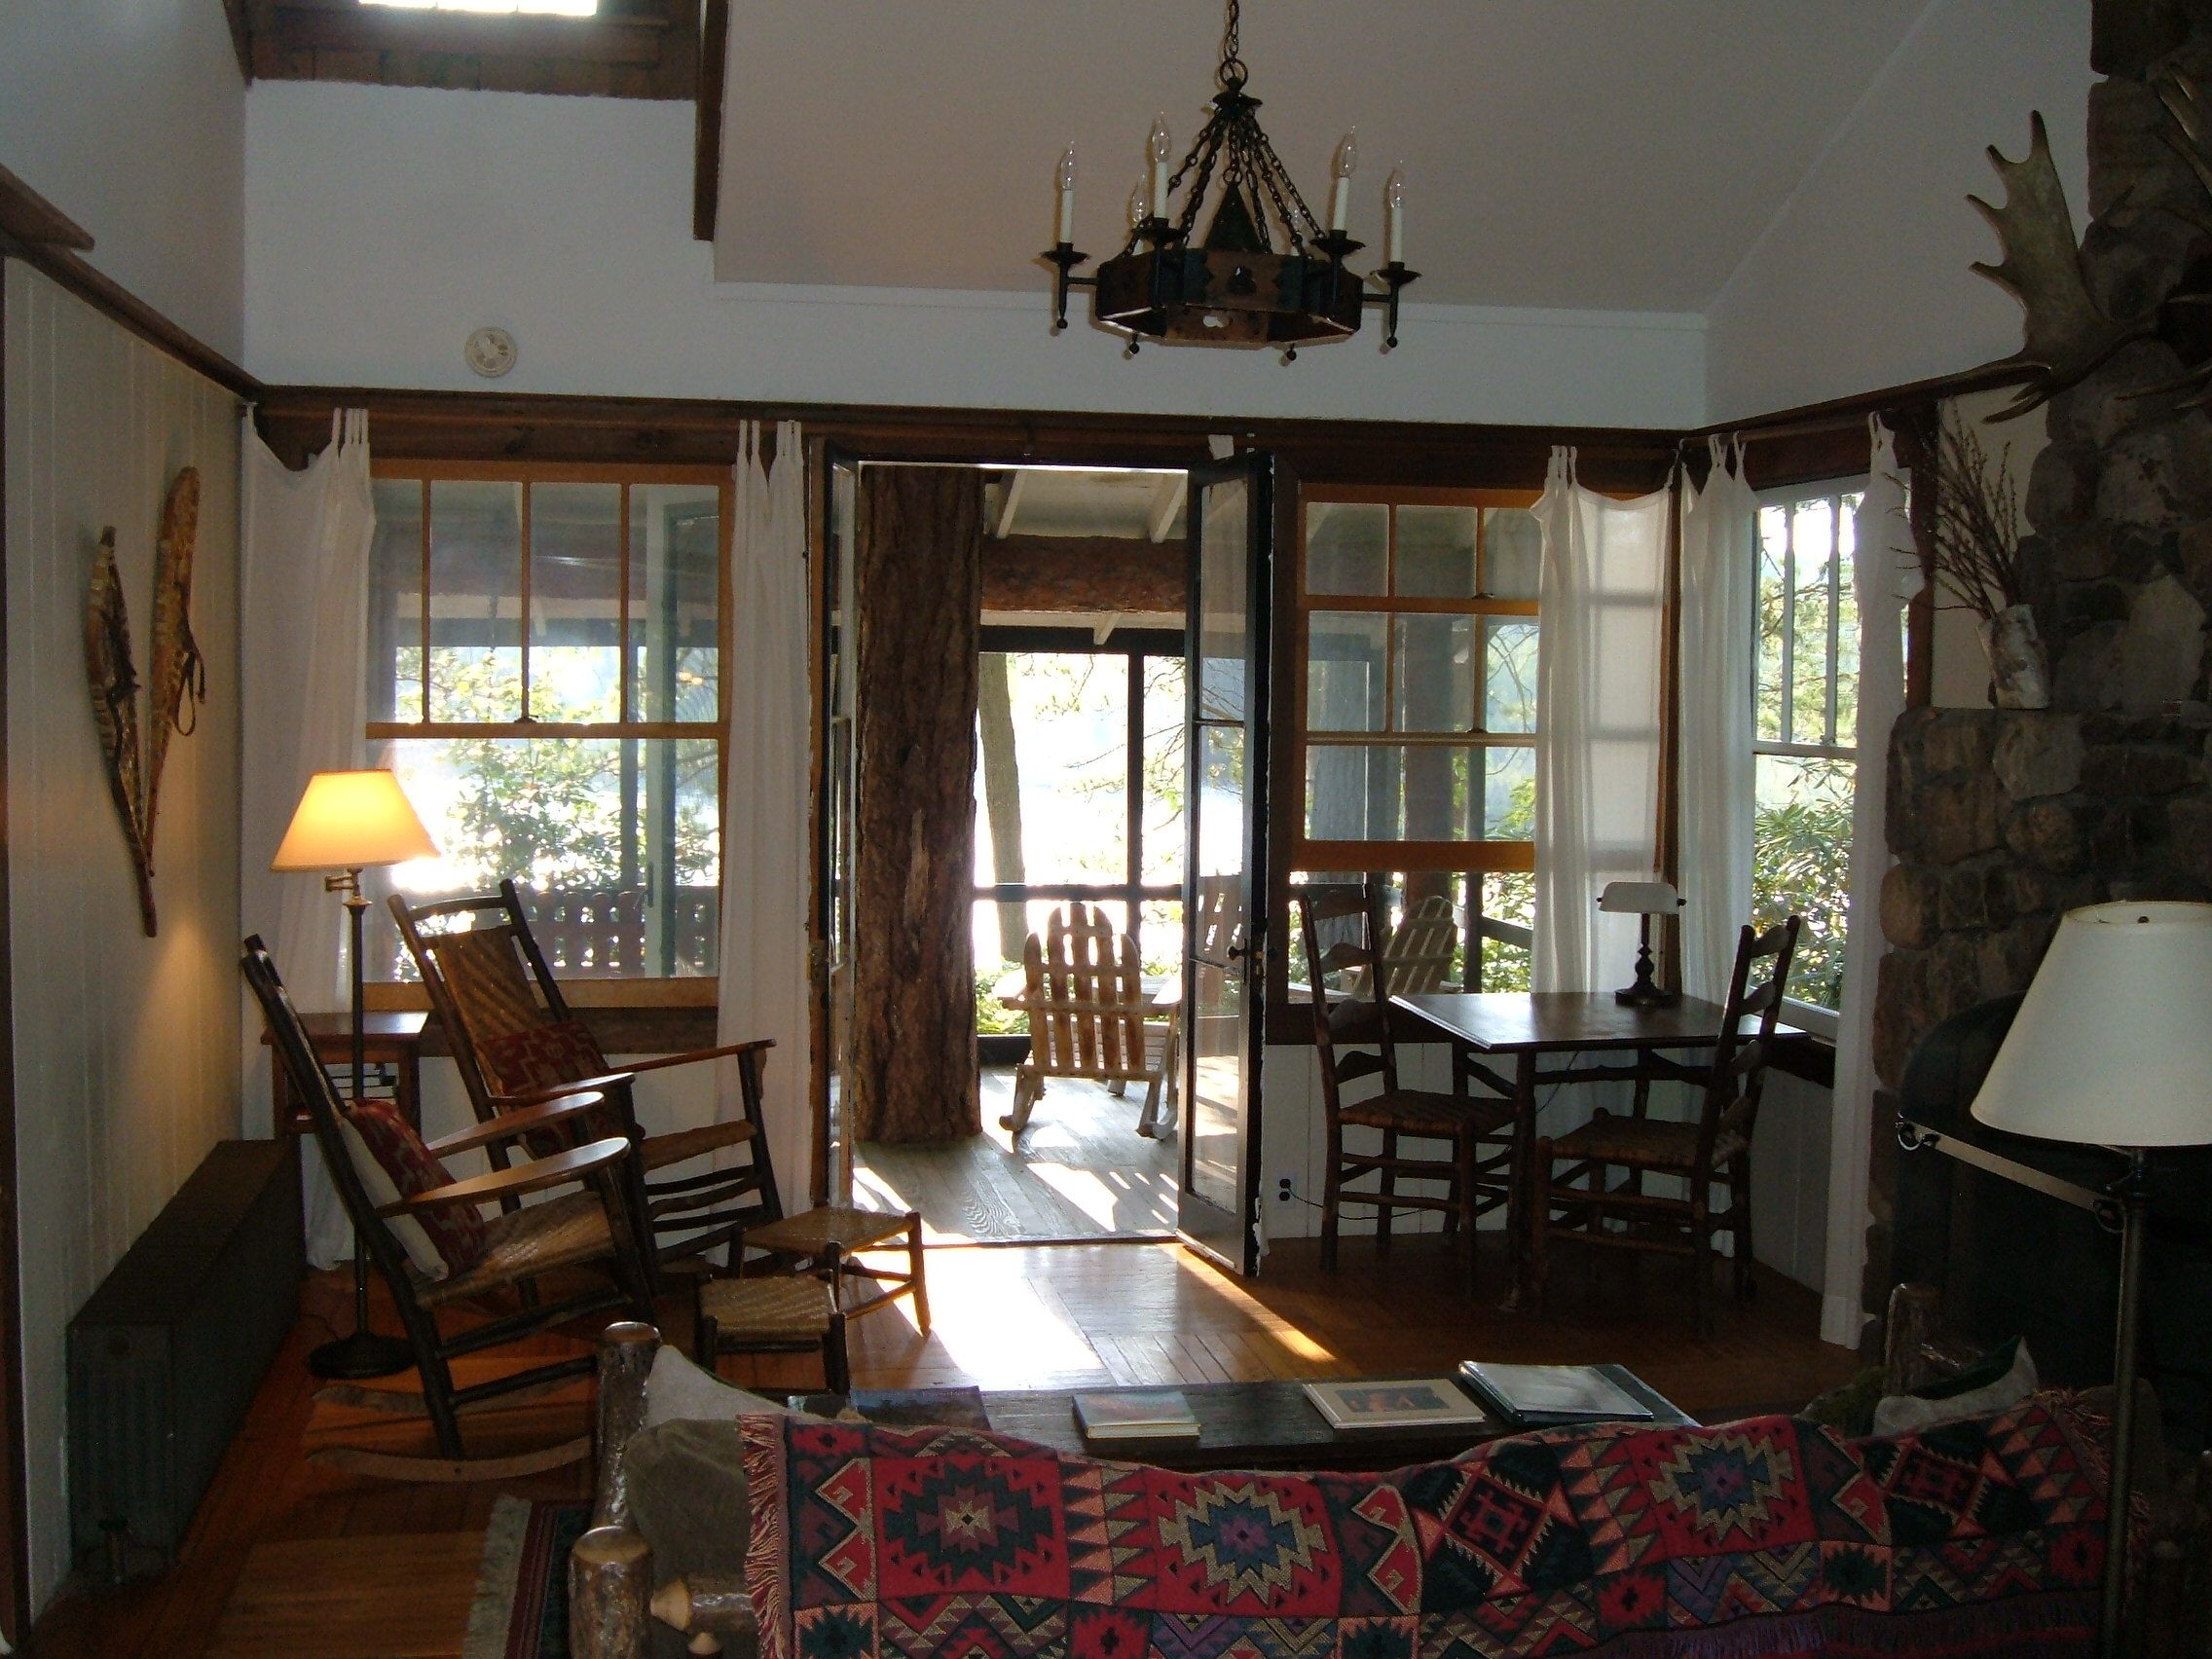 solitude all cabin rentals optimized leading cabins adirondacks dining rental specialists adirondack cottage camp